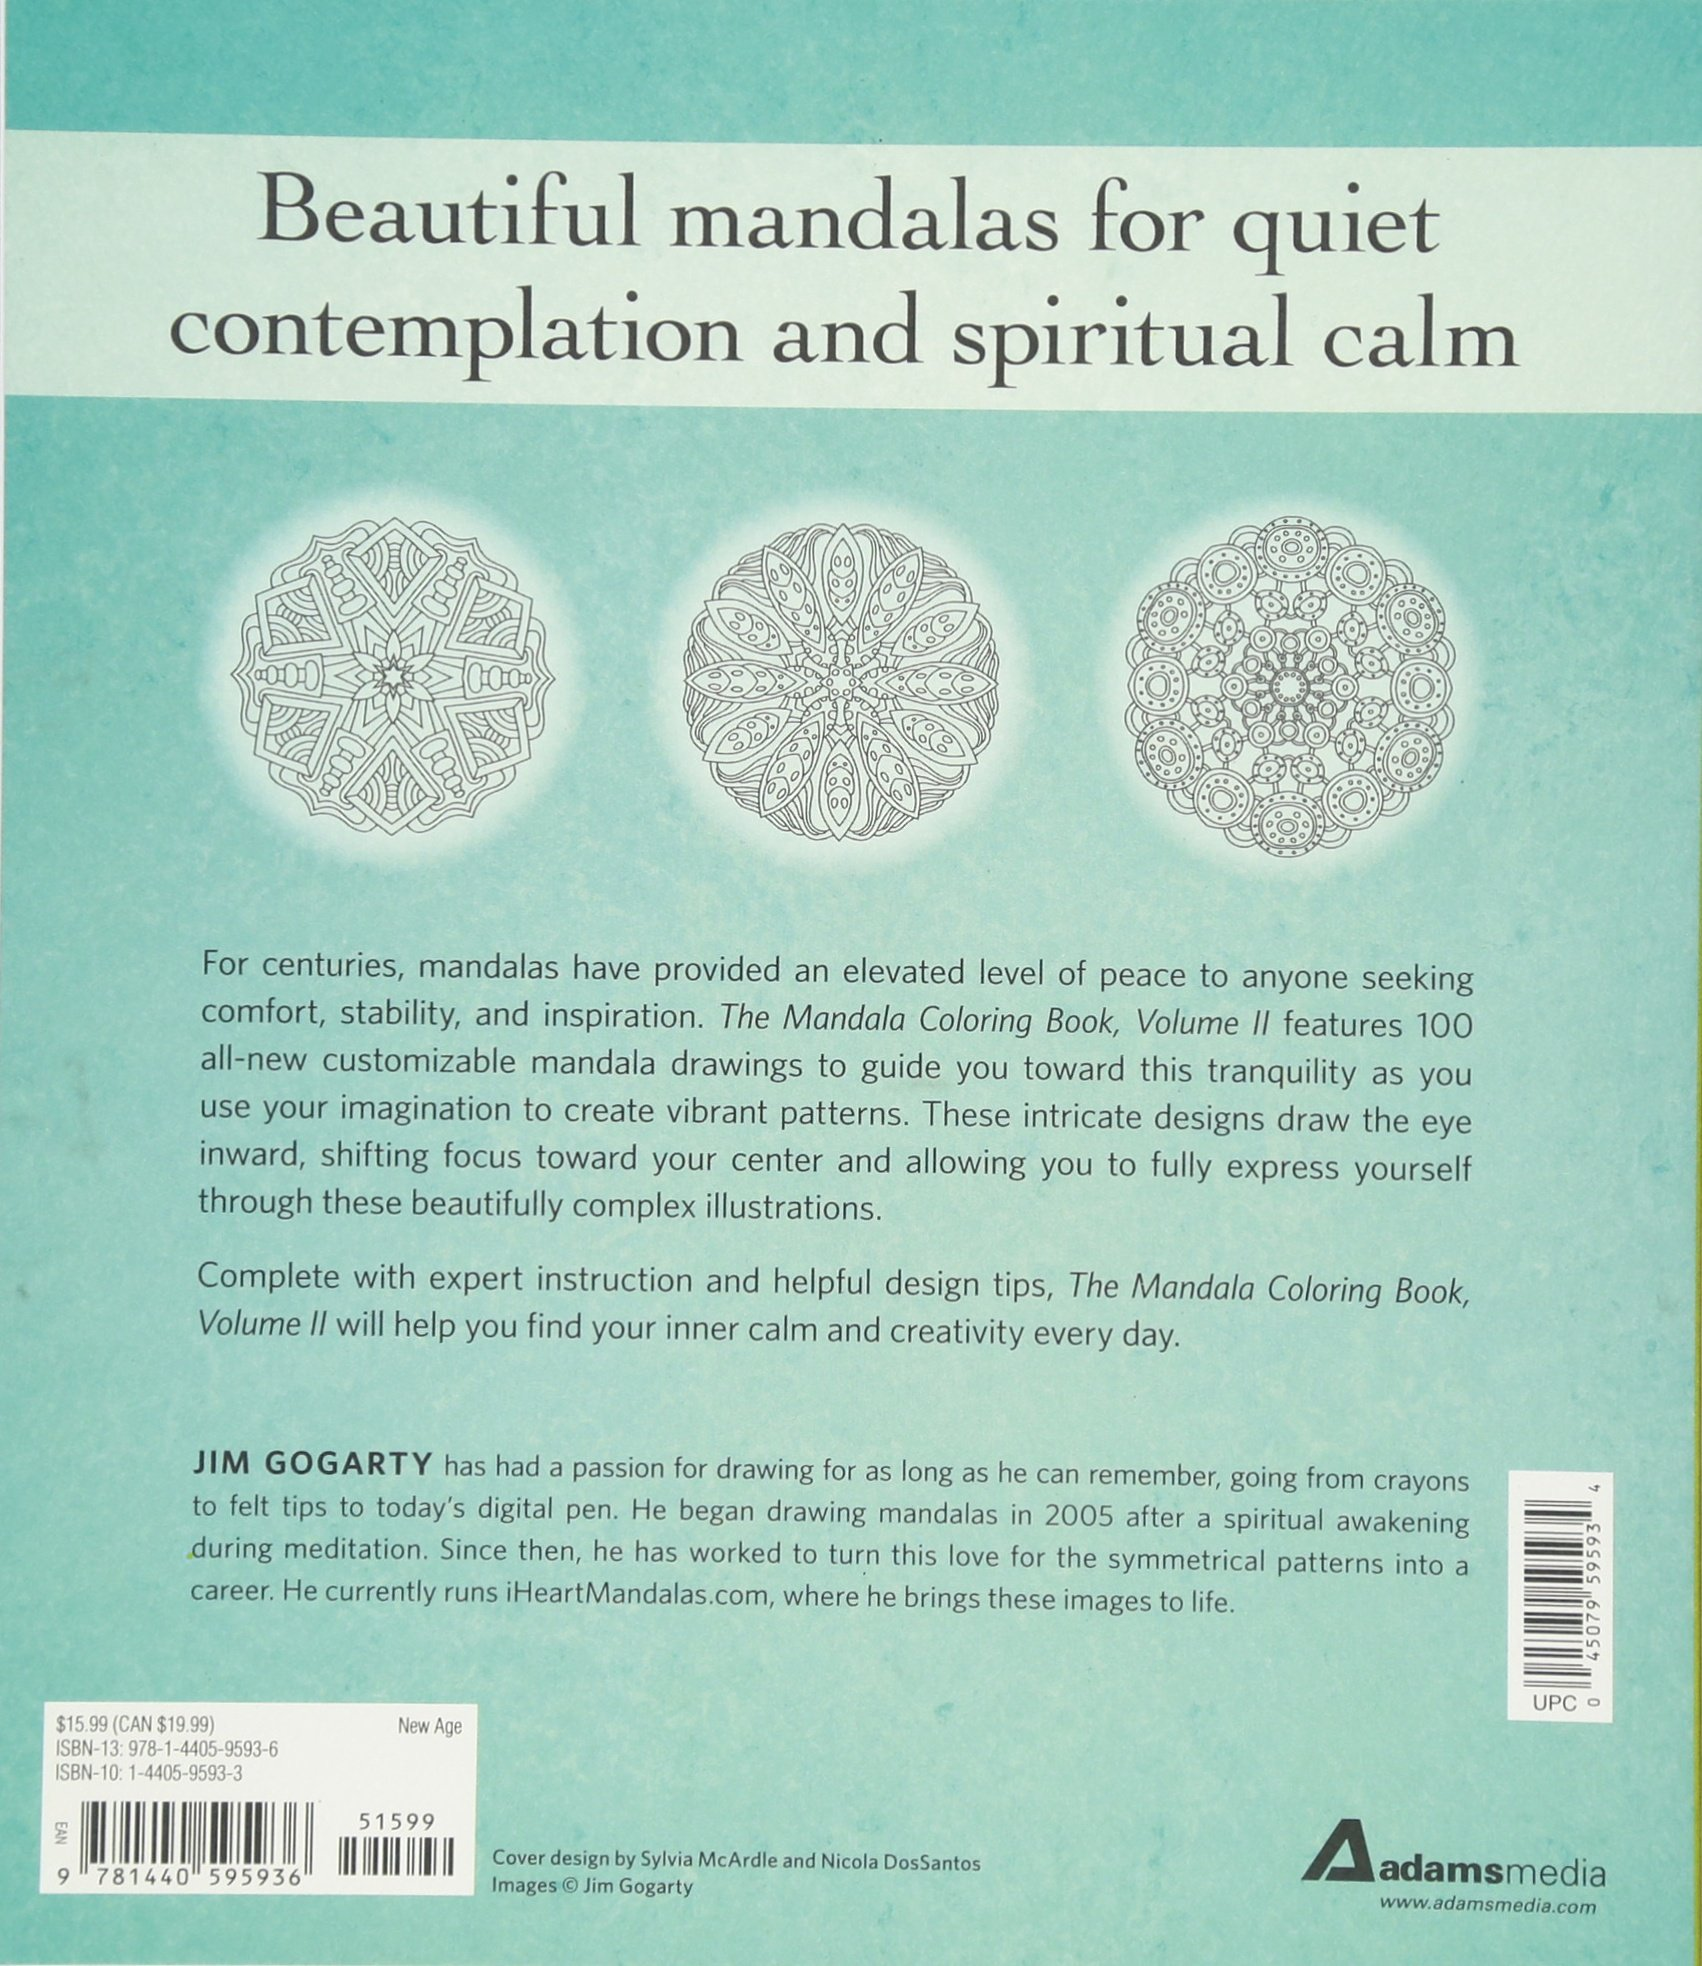 Amazon The Mandala Coloring Book Volume II Relax Calm Your Mind And Find Peace With 100 Pages 9781440595936 Jim Gogarty Books